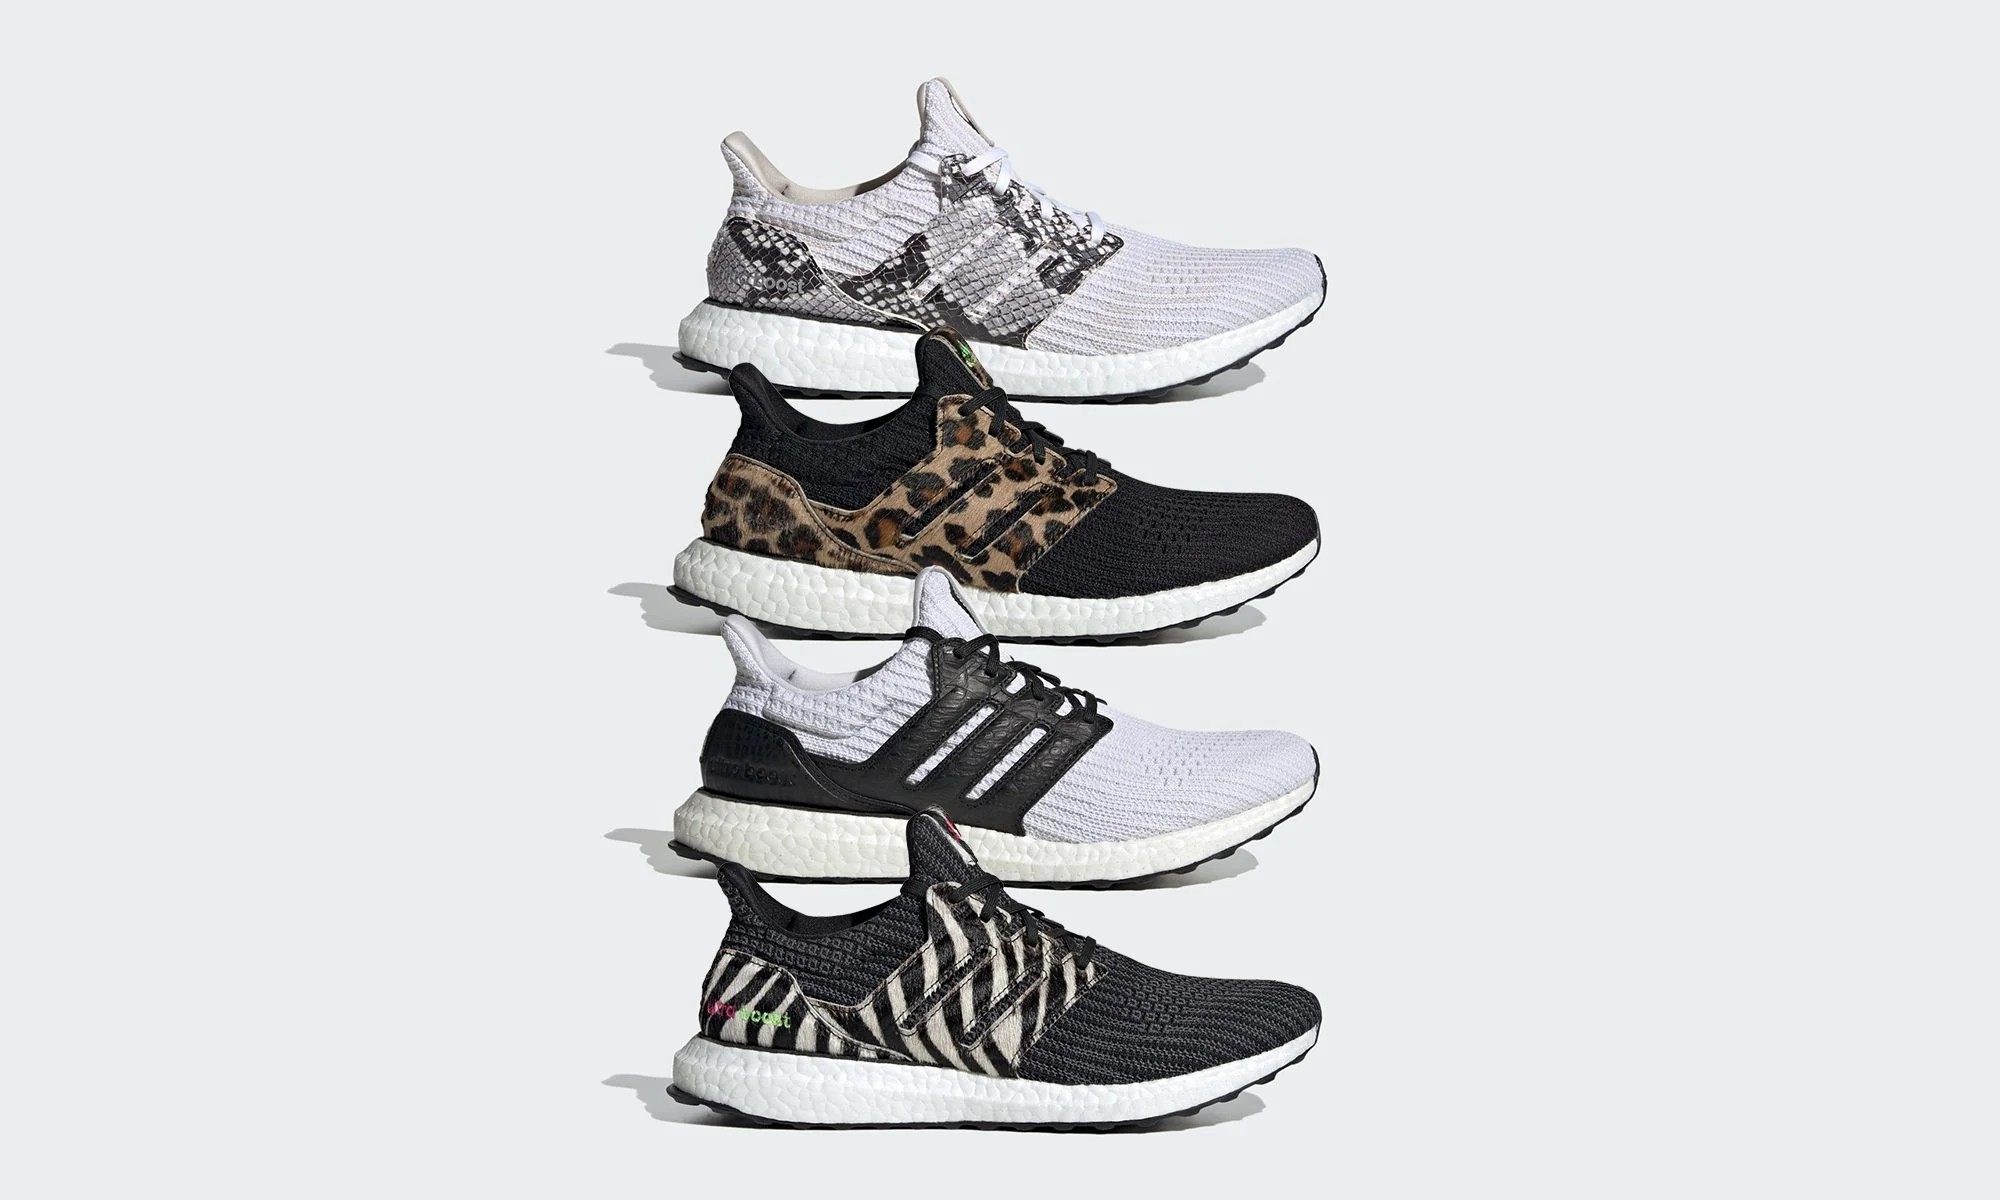 adidas UltraBOOST「Animal Pack」系列鞋款正式亮相